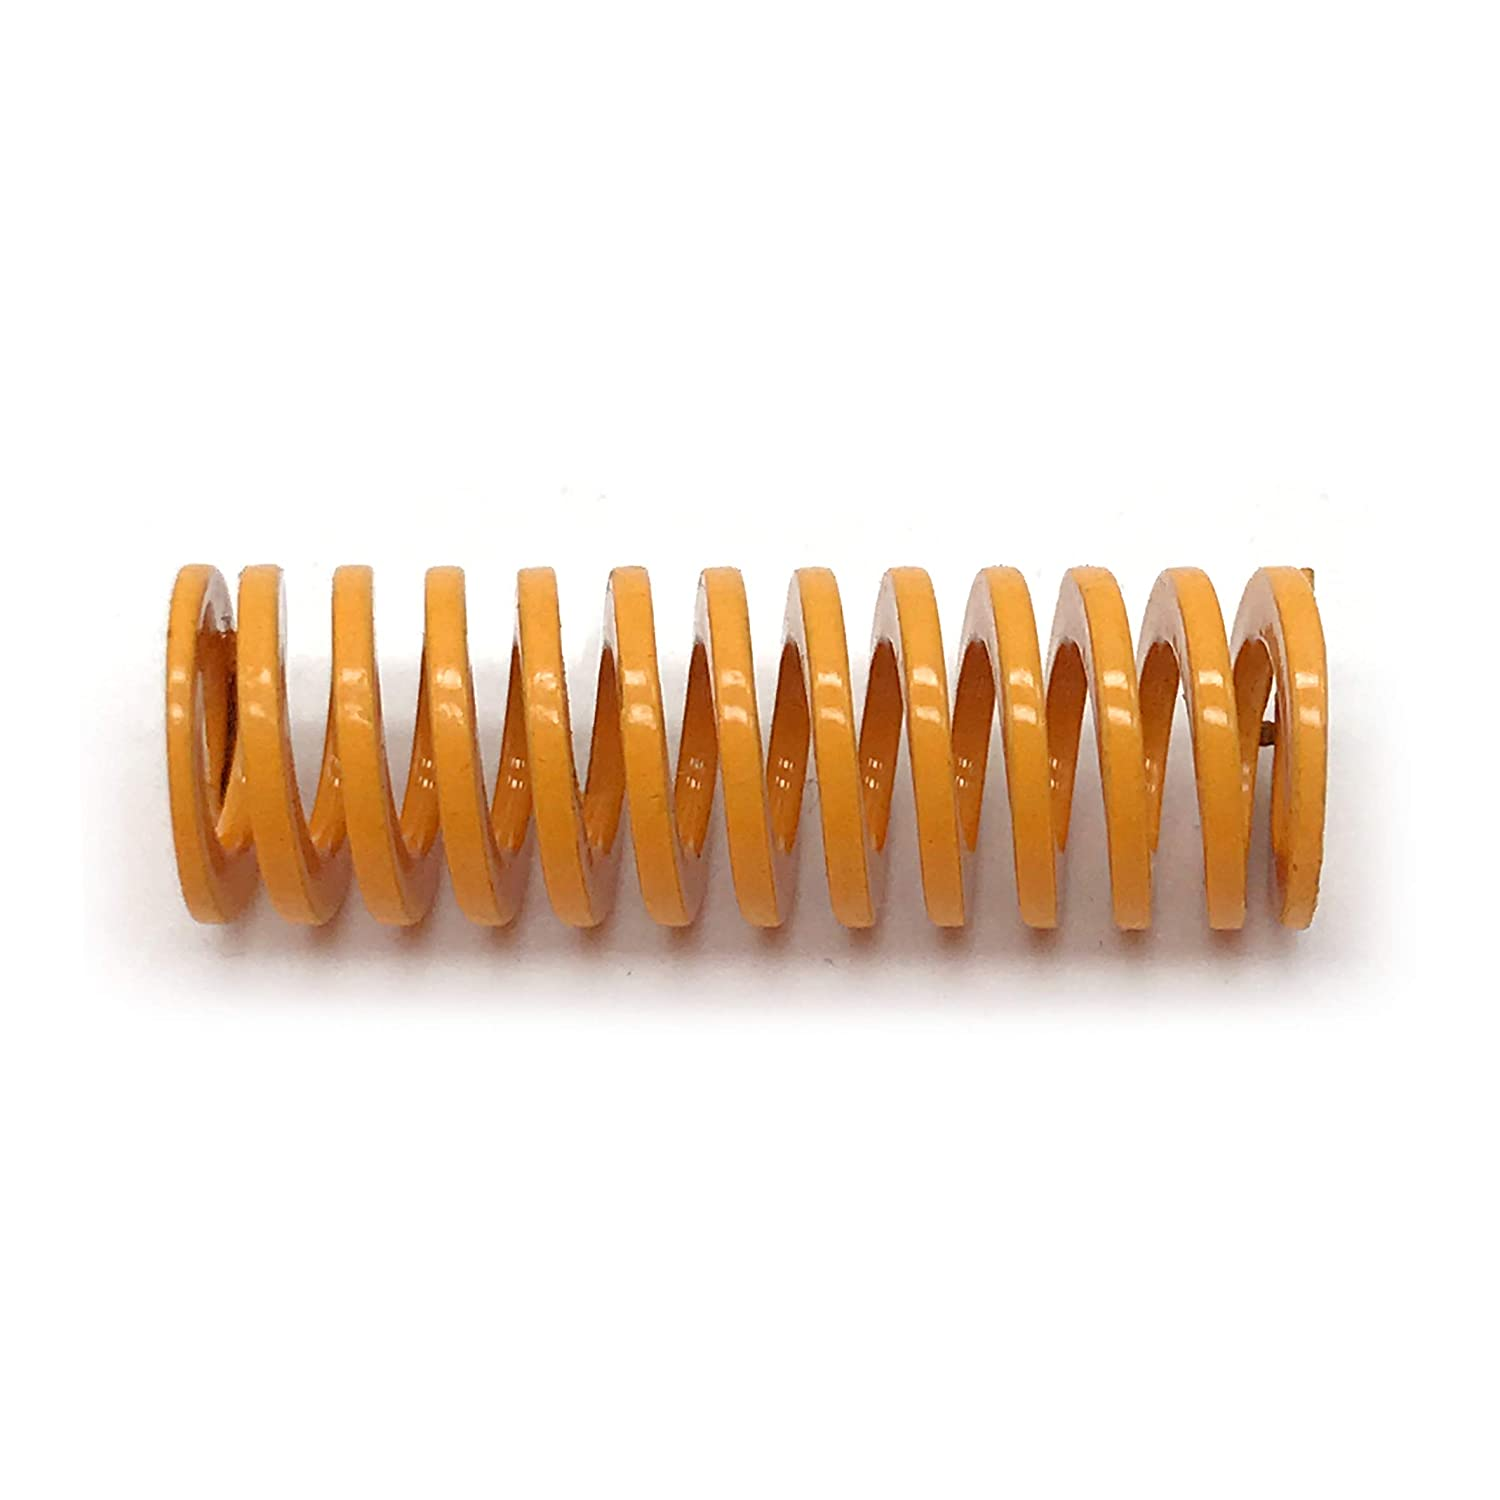 12Pcs 3D Printer die Compression Spring for Heated Bed Platform Compatible with LightLoad for Creality CR-10 10S S4 S5 Series